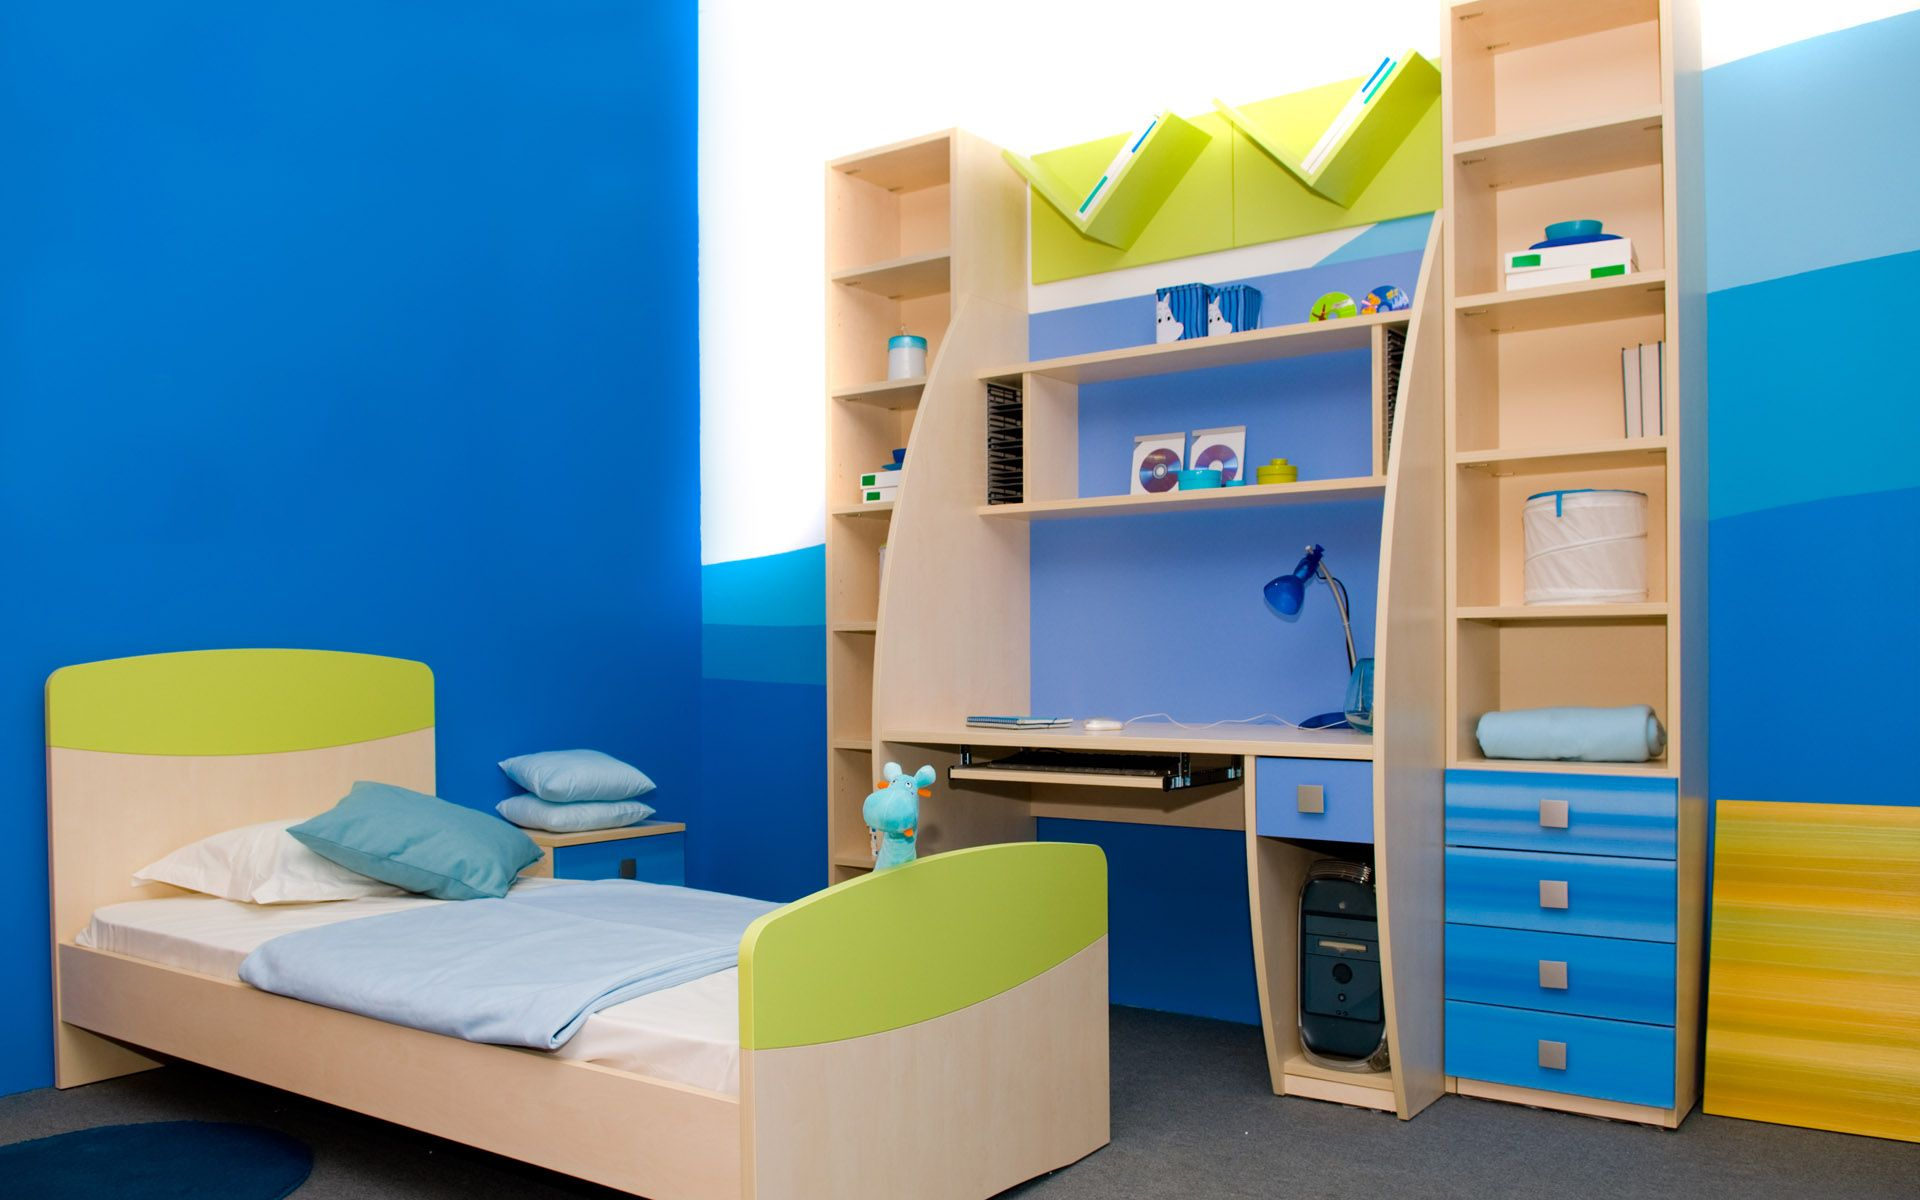 Download kids Room wallpapers design interior  Free wallpaper Interior decoration